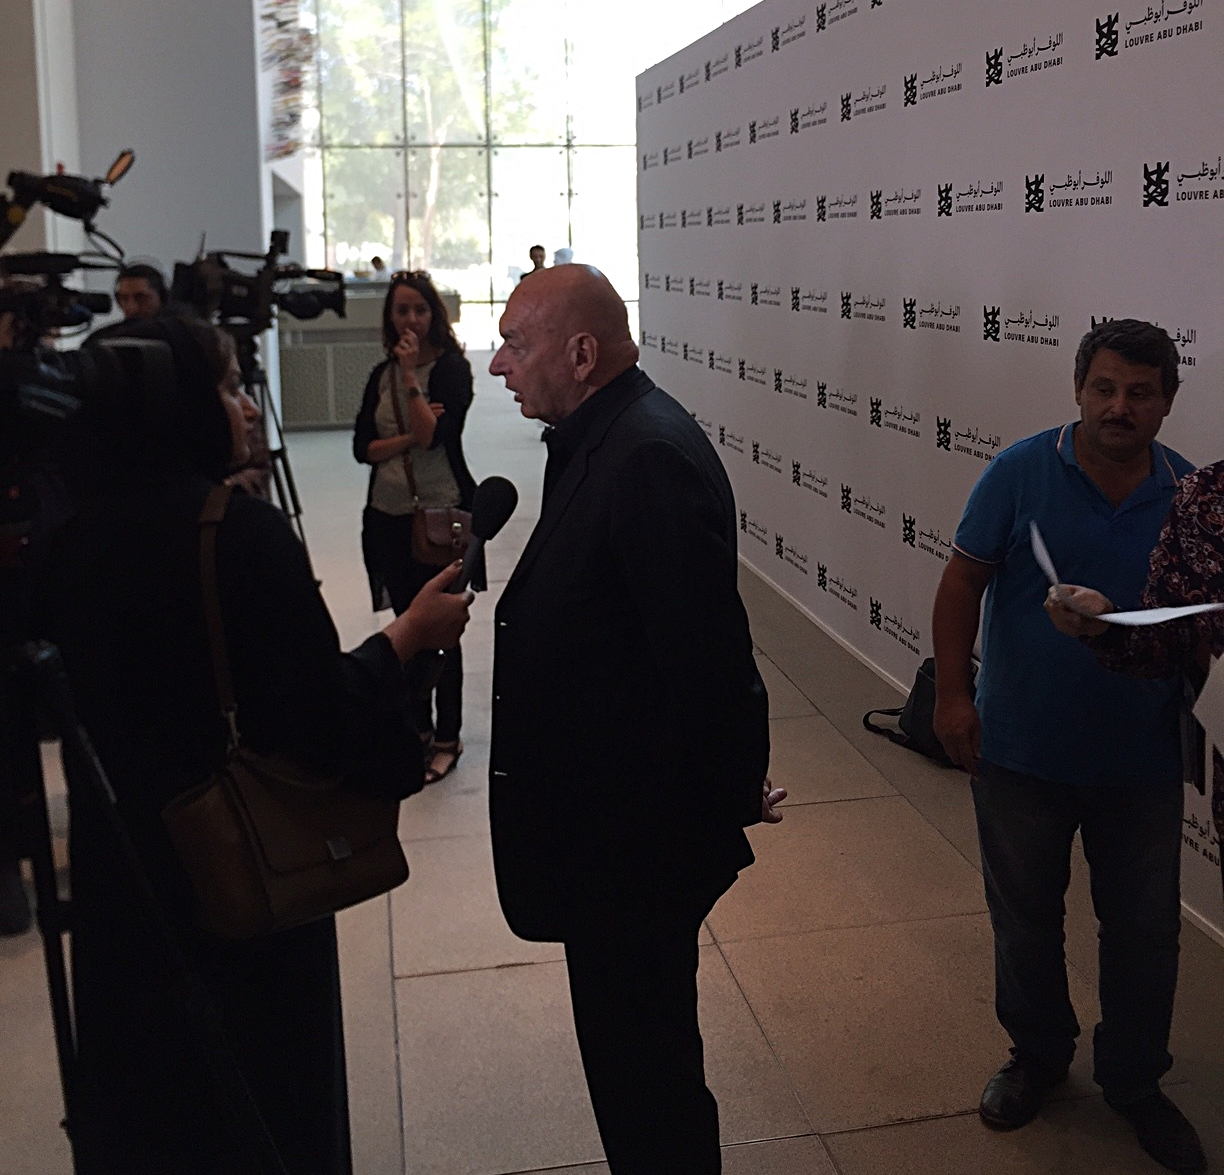 Jean Nouvel, architect of the Louvre Abu Dhabi, giving interviews after the announcement of the museum's opening date (11 November 2017).